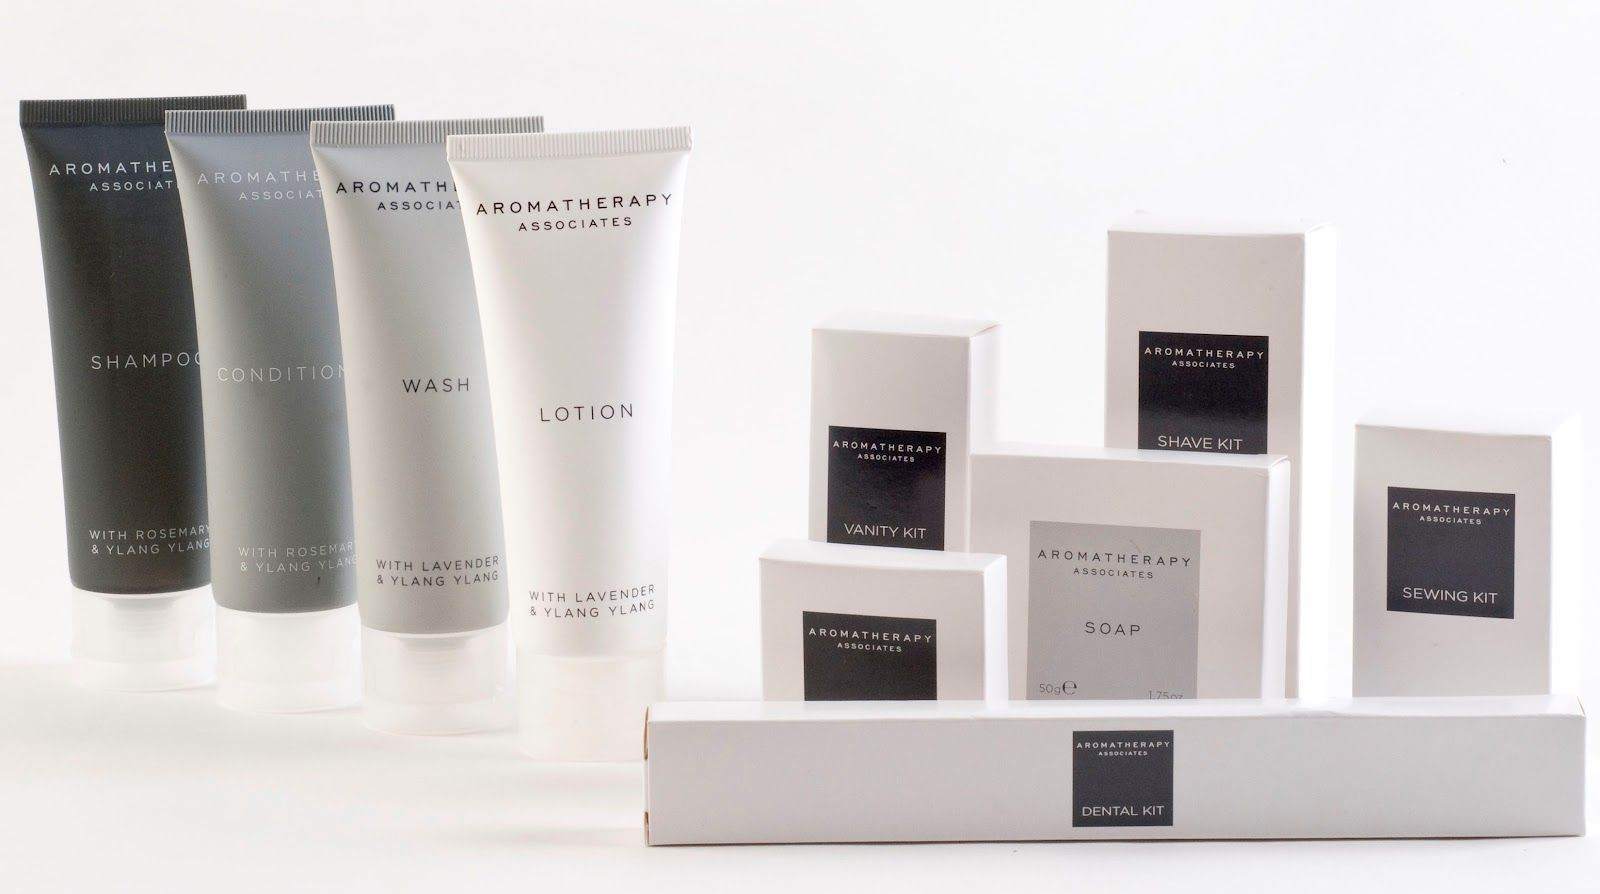 Jw Marriott New Aromatherapy Bath Amenities To Soothe Tired Travelers Stay Pinterest